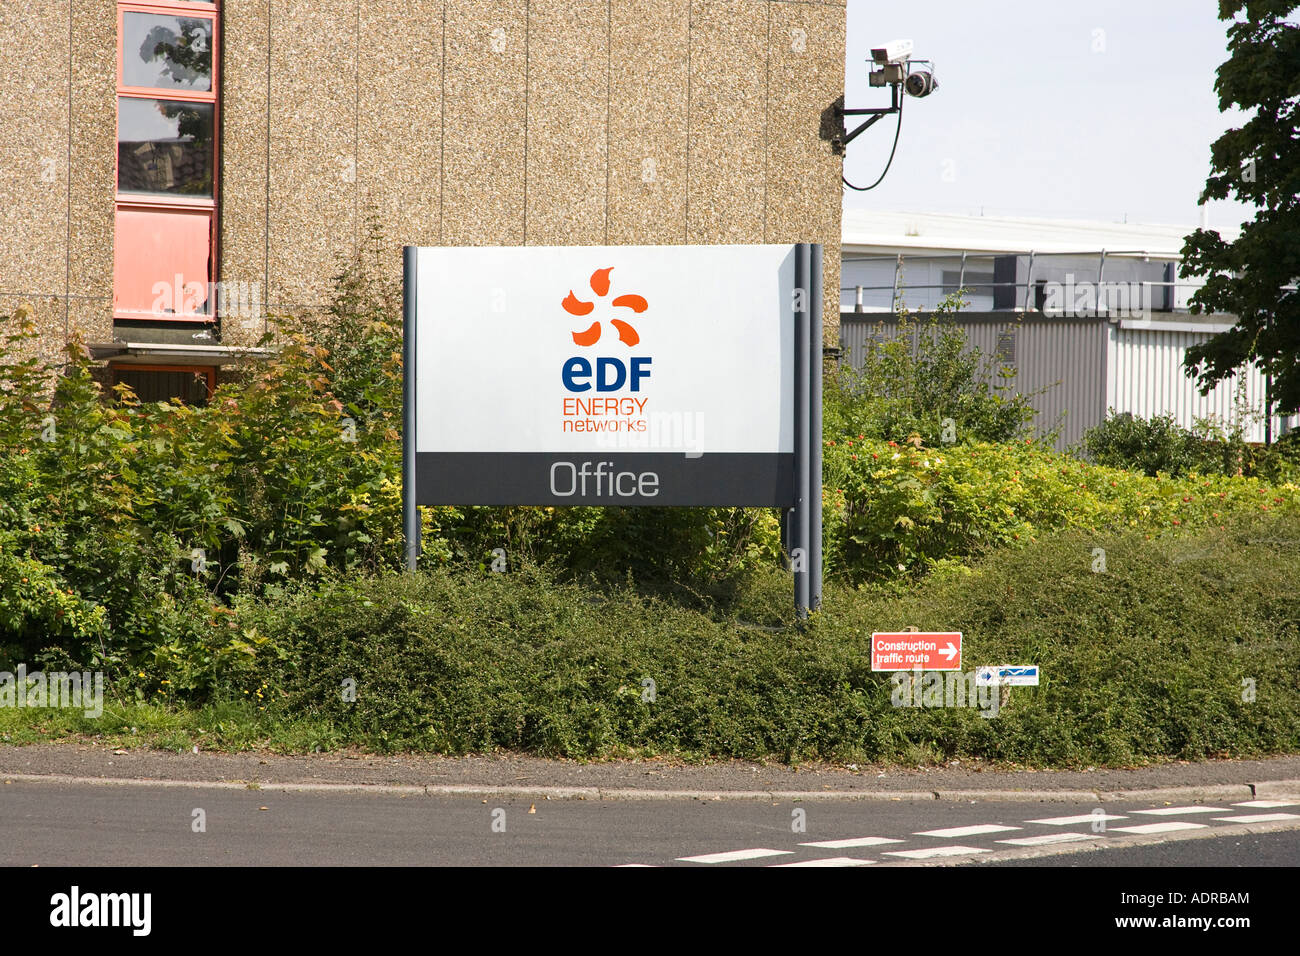 EDF office at Bury St Edmunds in Suffolk, UK - Stock Image